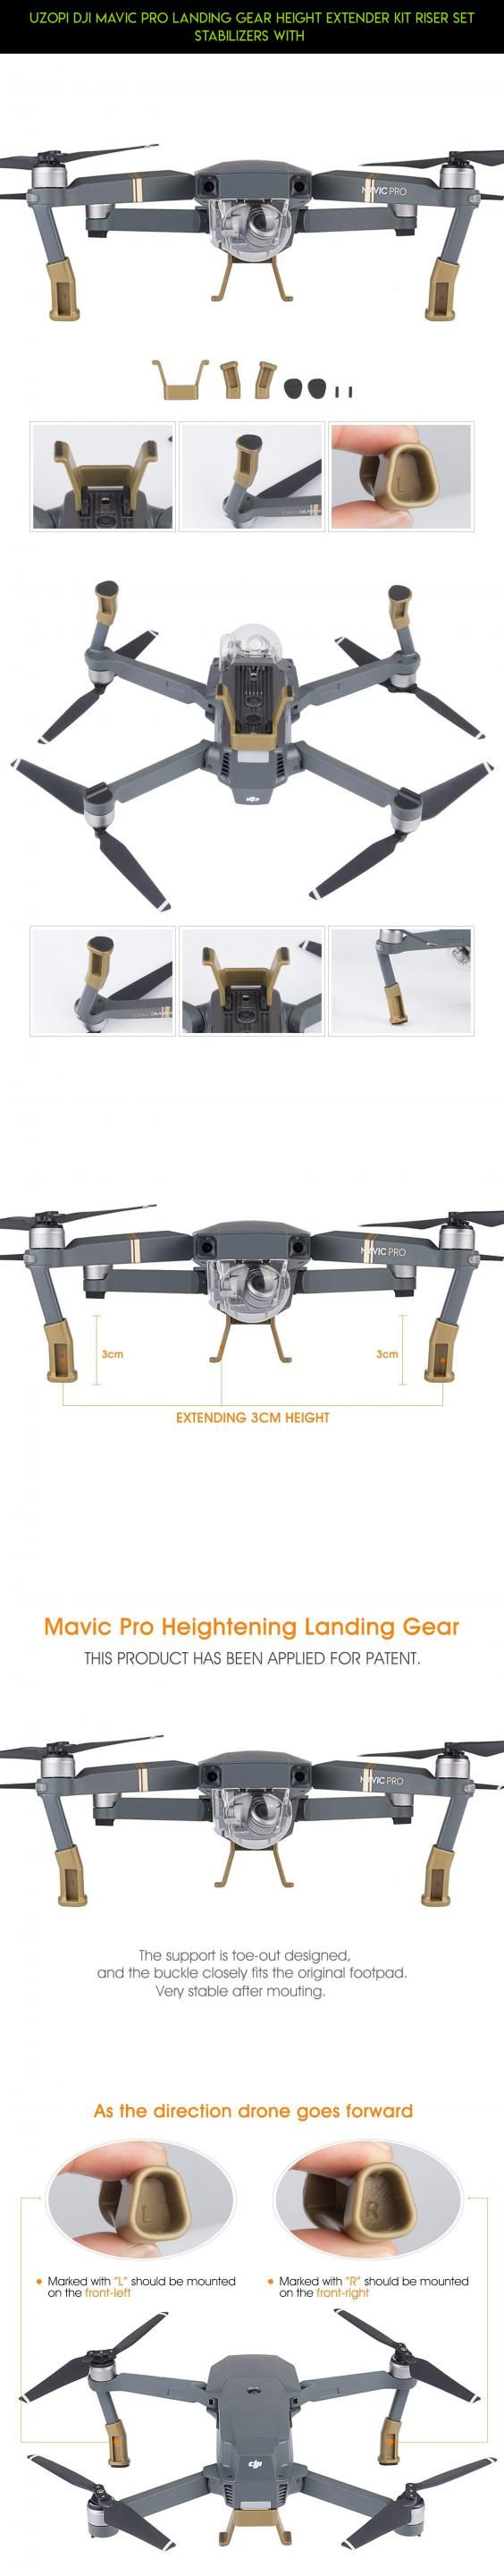 UZOPI DJI Mavic Pro Landing Gear Height Extender Kit Riser Set Stabilizers with #racing #drone #technology #landing #kit #pro #plans #camera #gear #parts #gadgets #stabilizers #products #mavic #tech #fpv #shopping